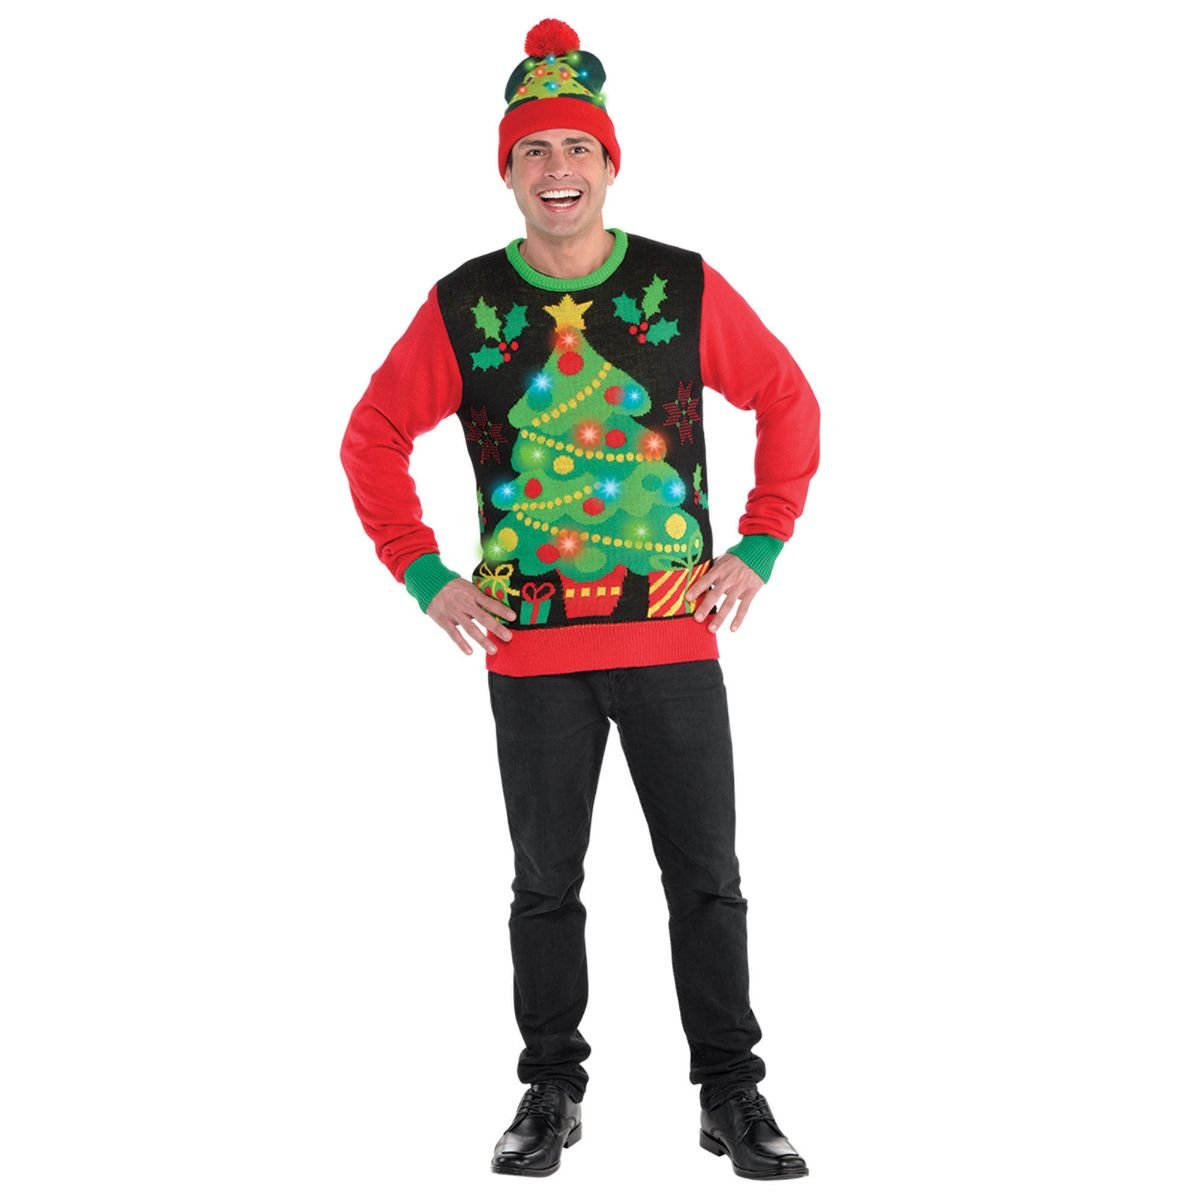 Amscan Light-Up Ugly Christmas Sweater - S/M